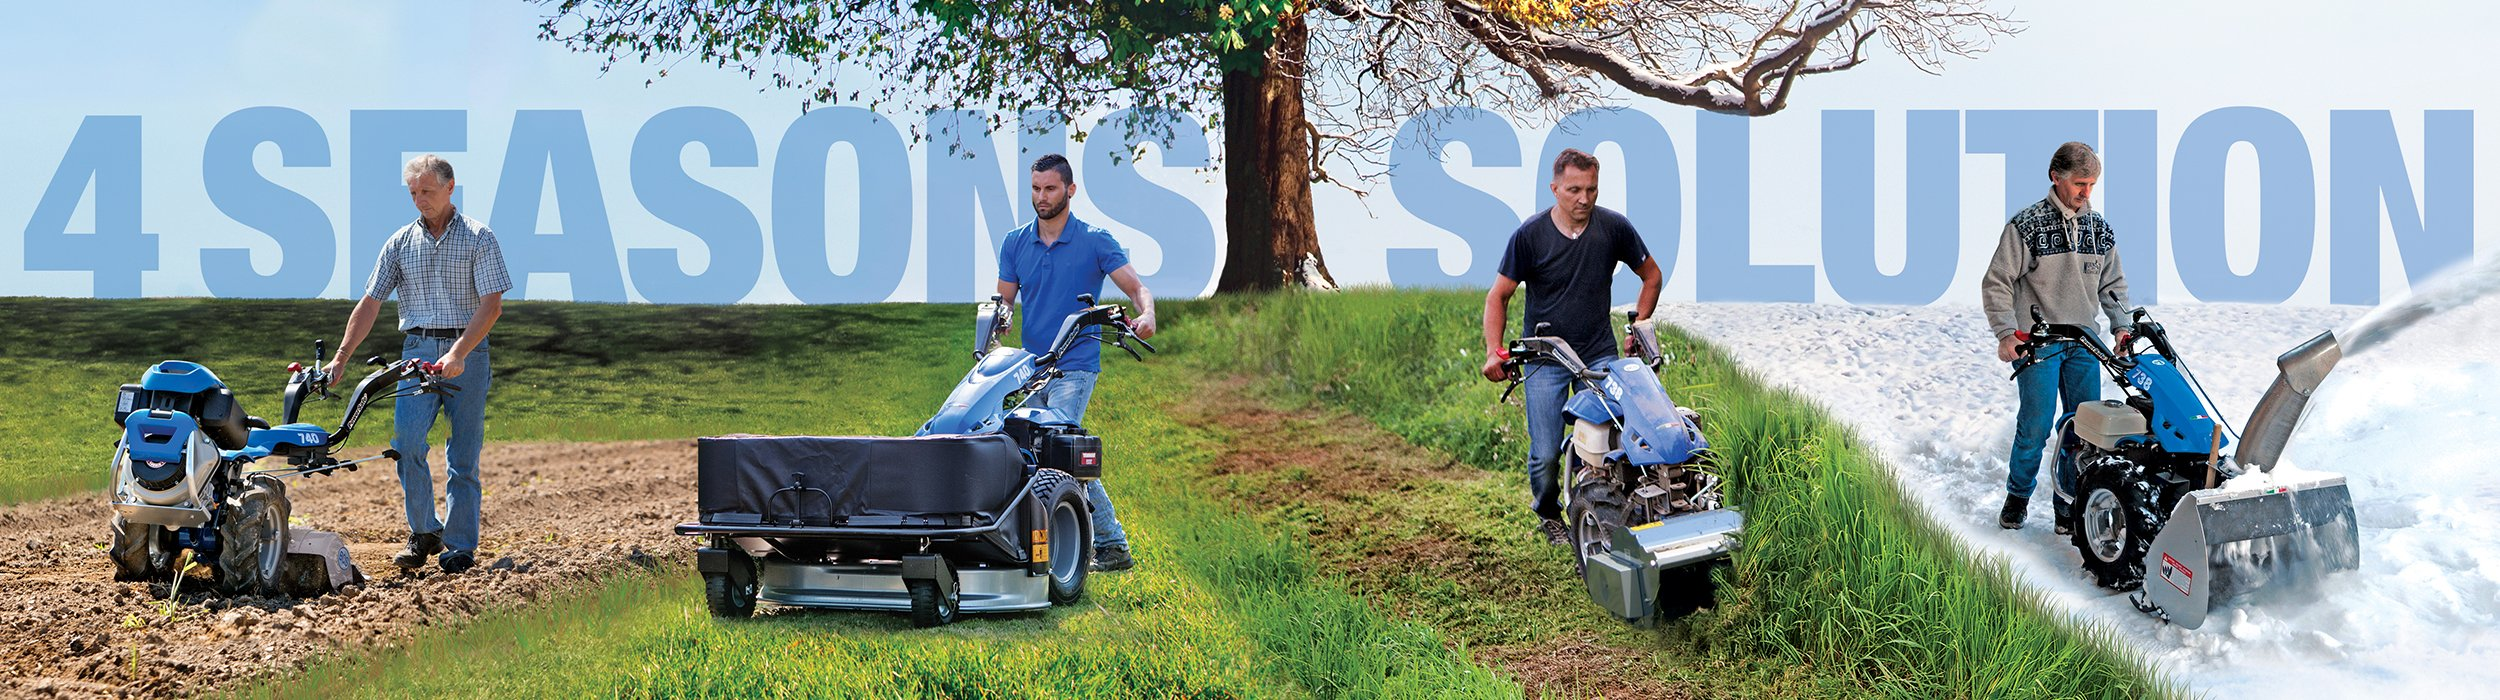 Website banner - Two Wheeled Tractors for all seasons